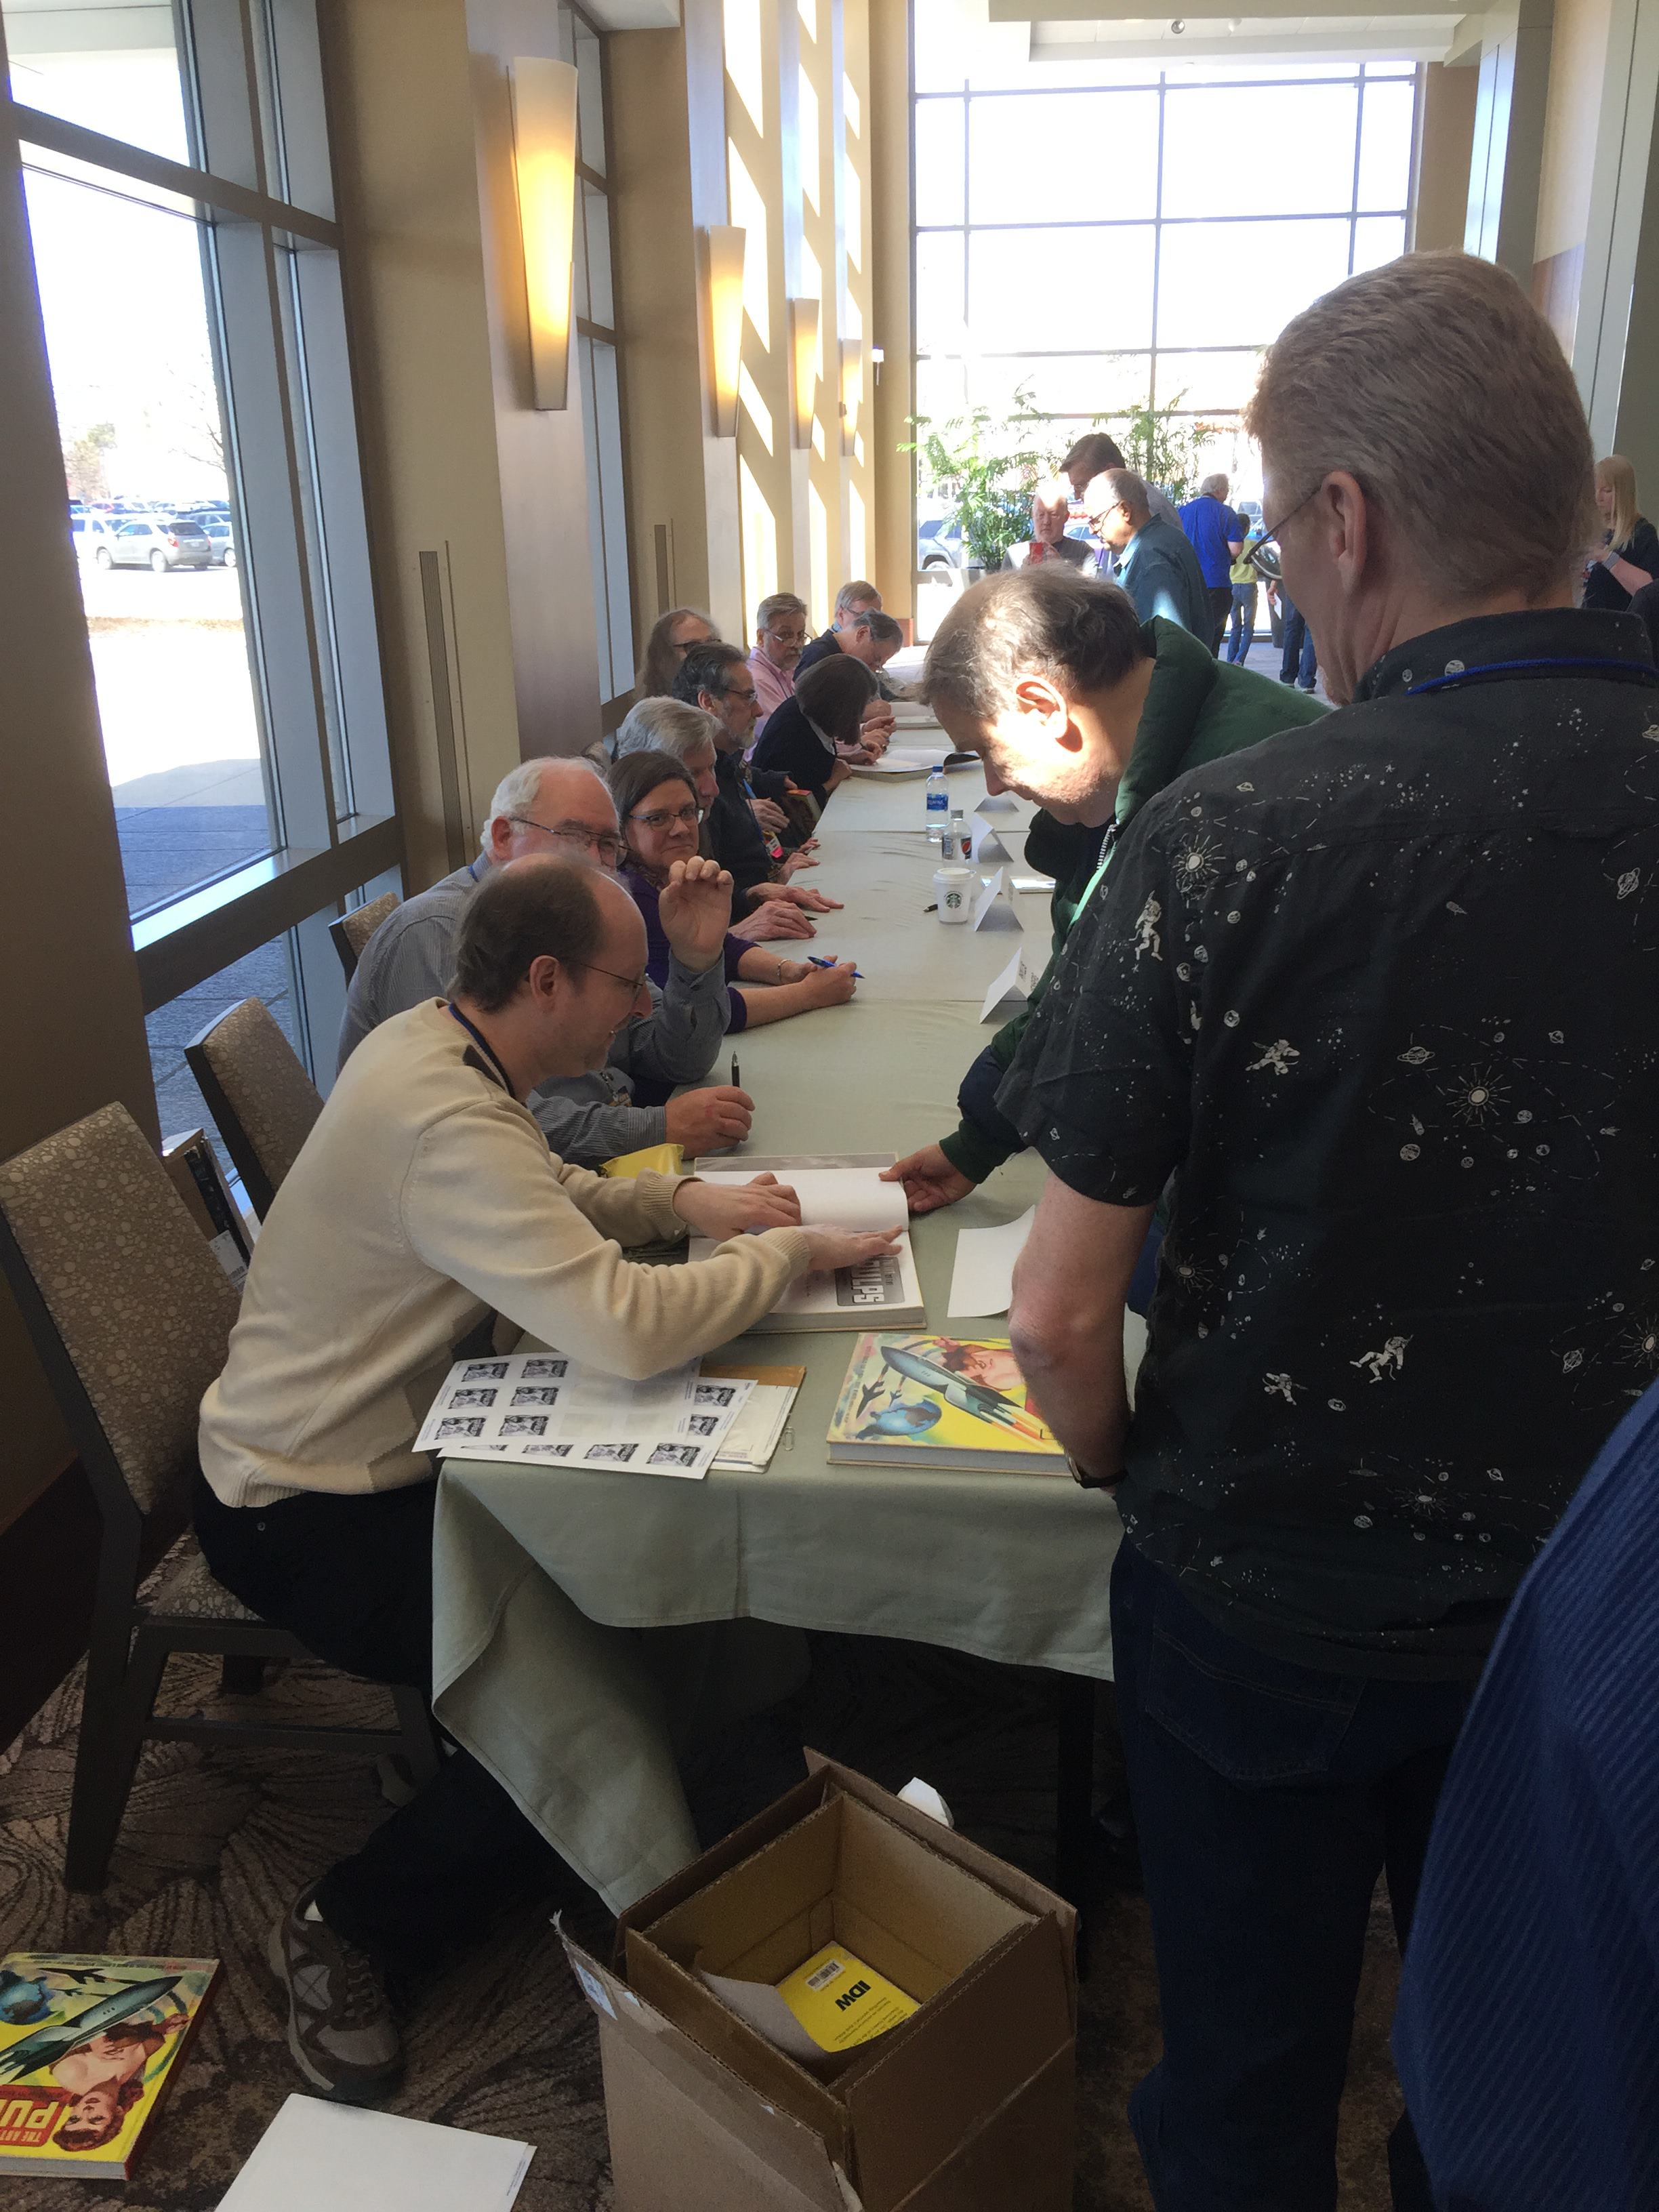 Book signing, with all the contributors lined up to sign copies